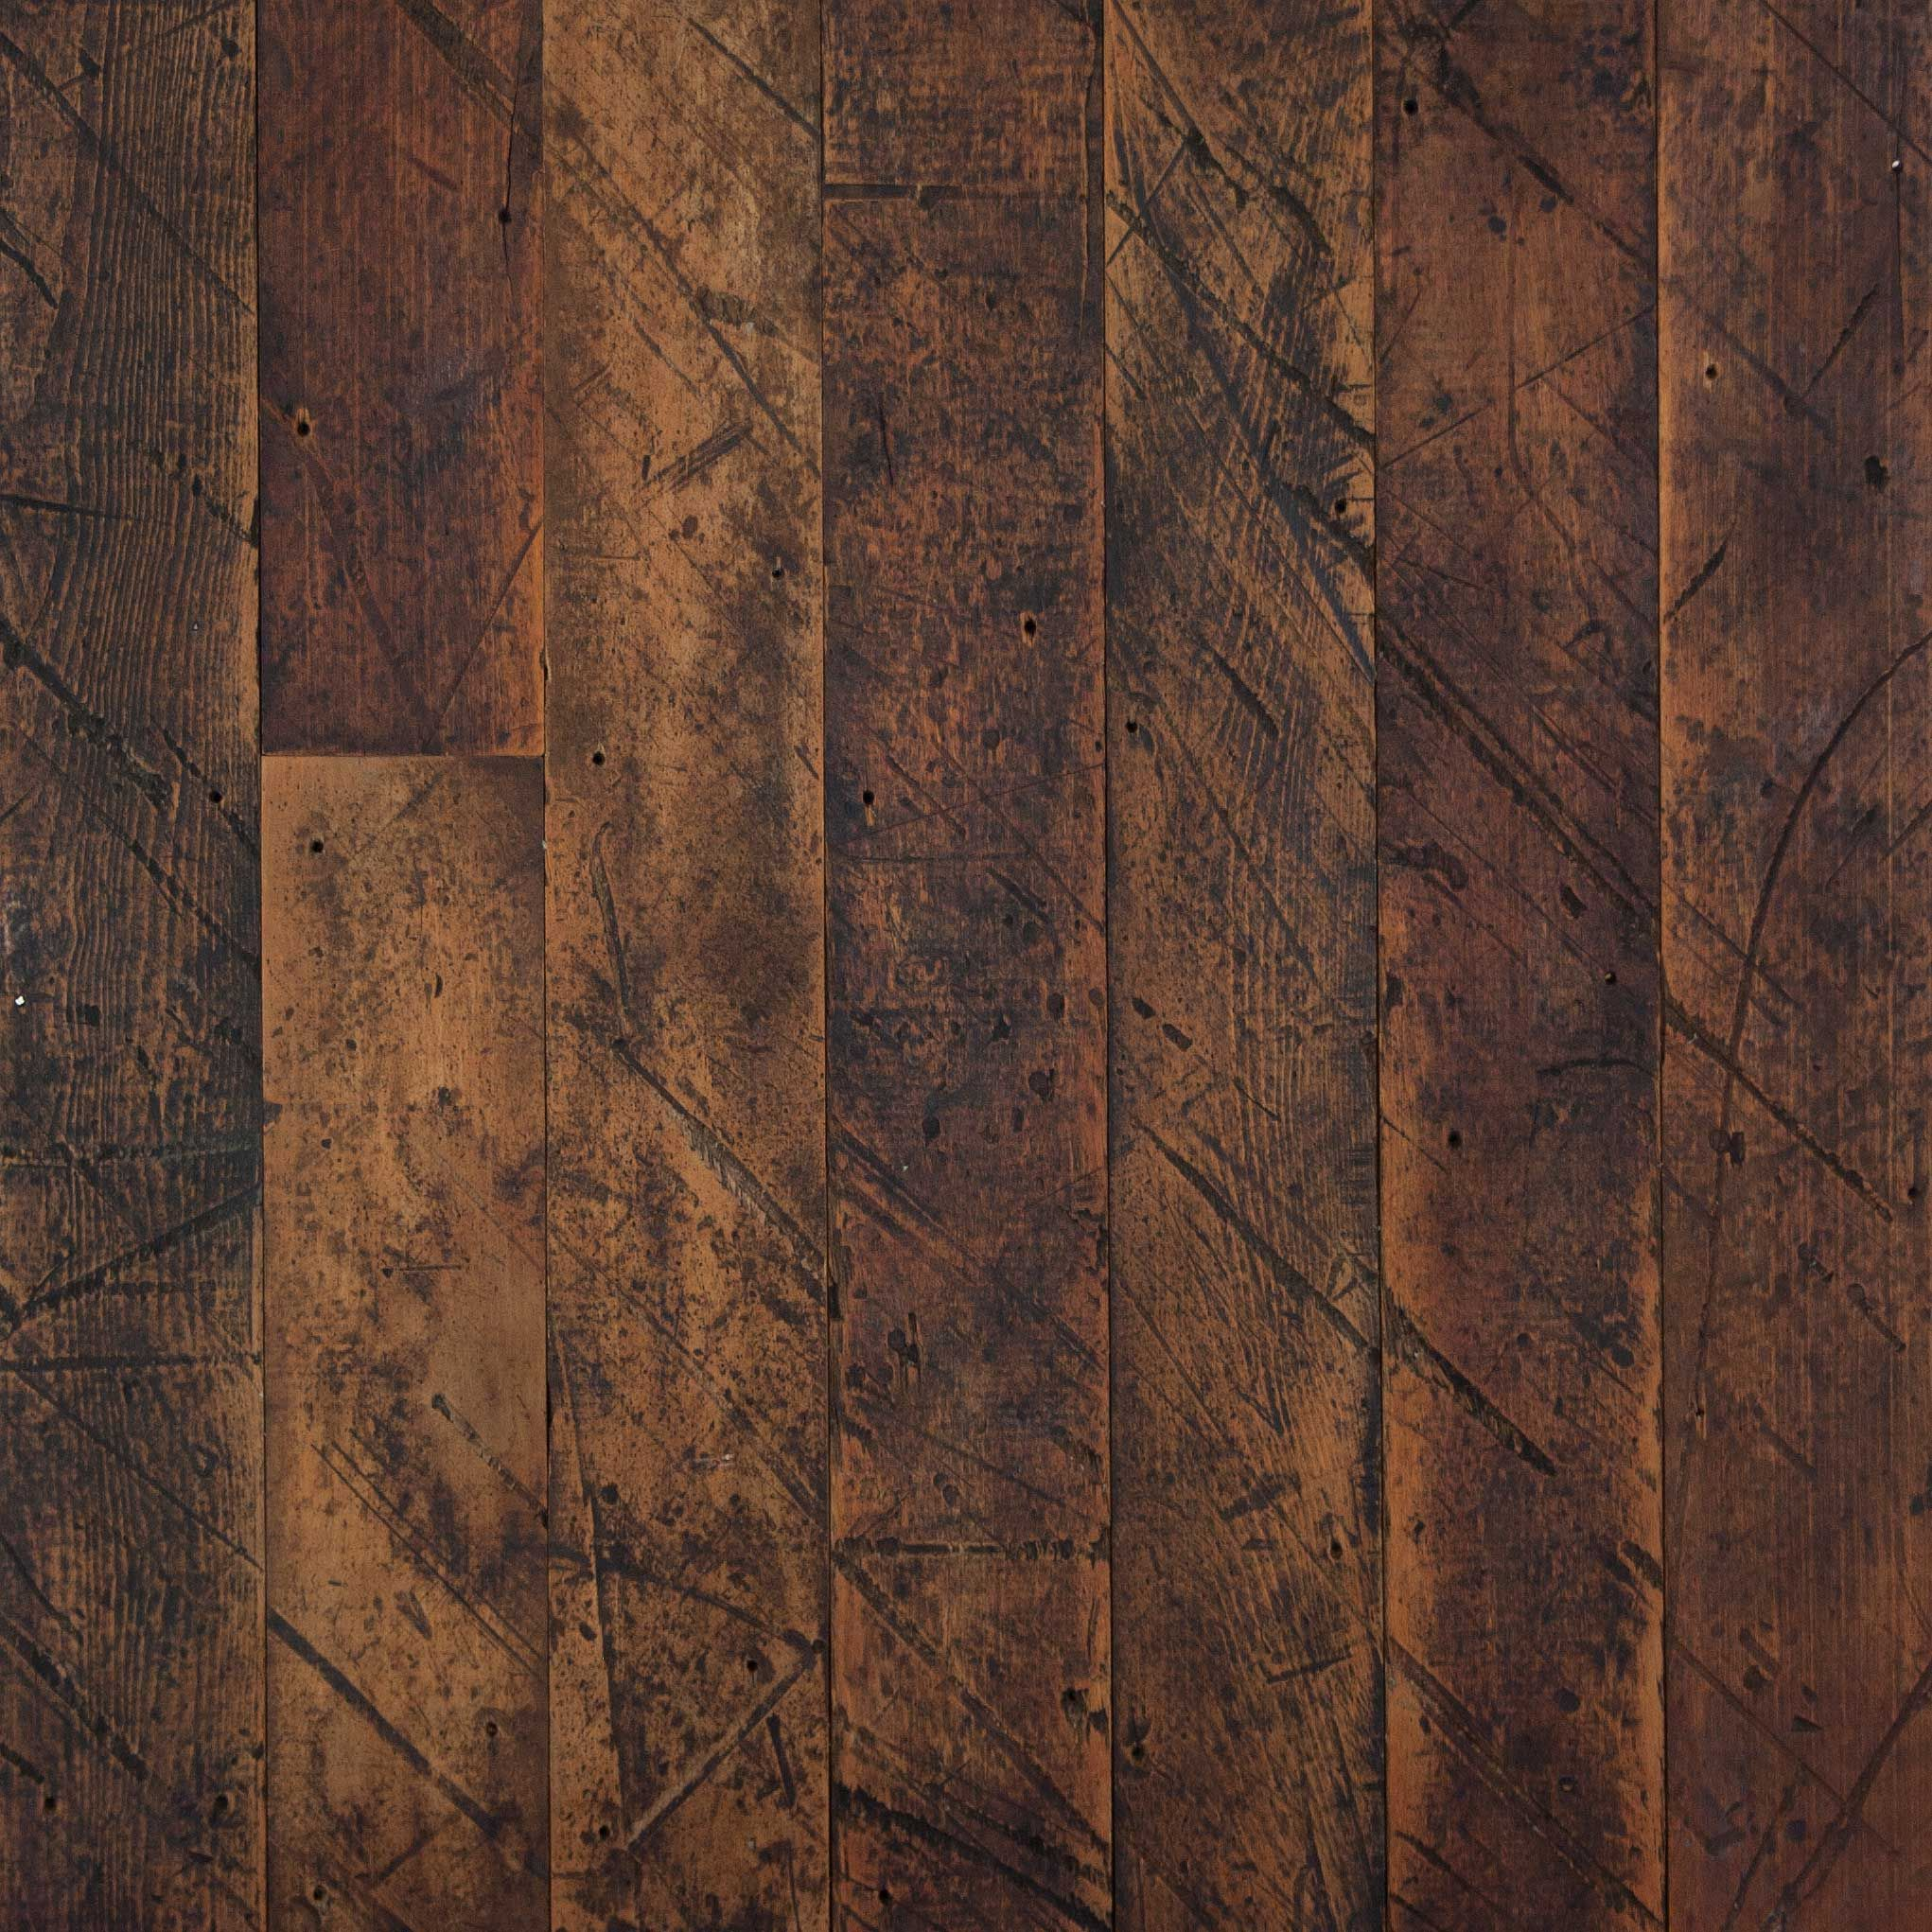 Longleaf lumber reclaimed factory maple flooring for Recycled wood floor